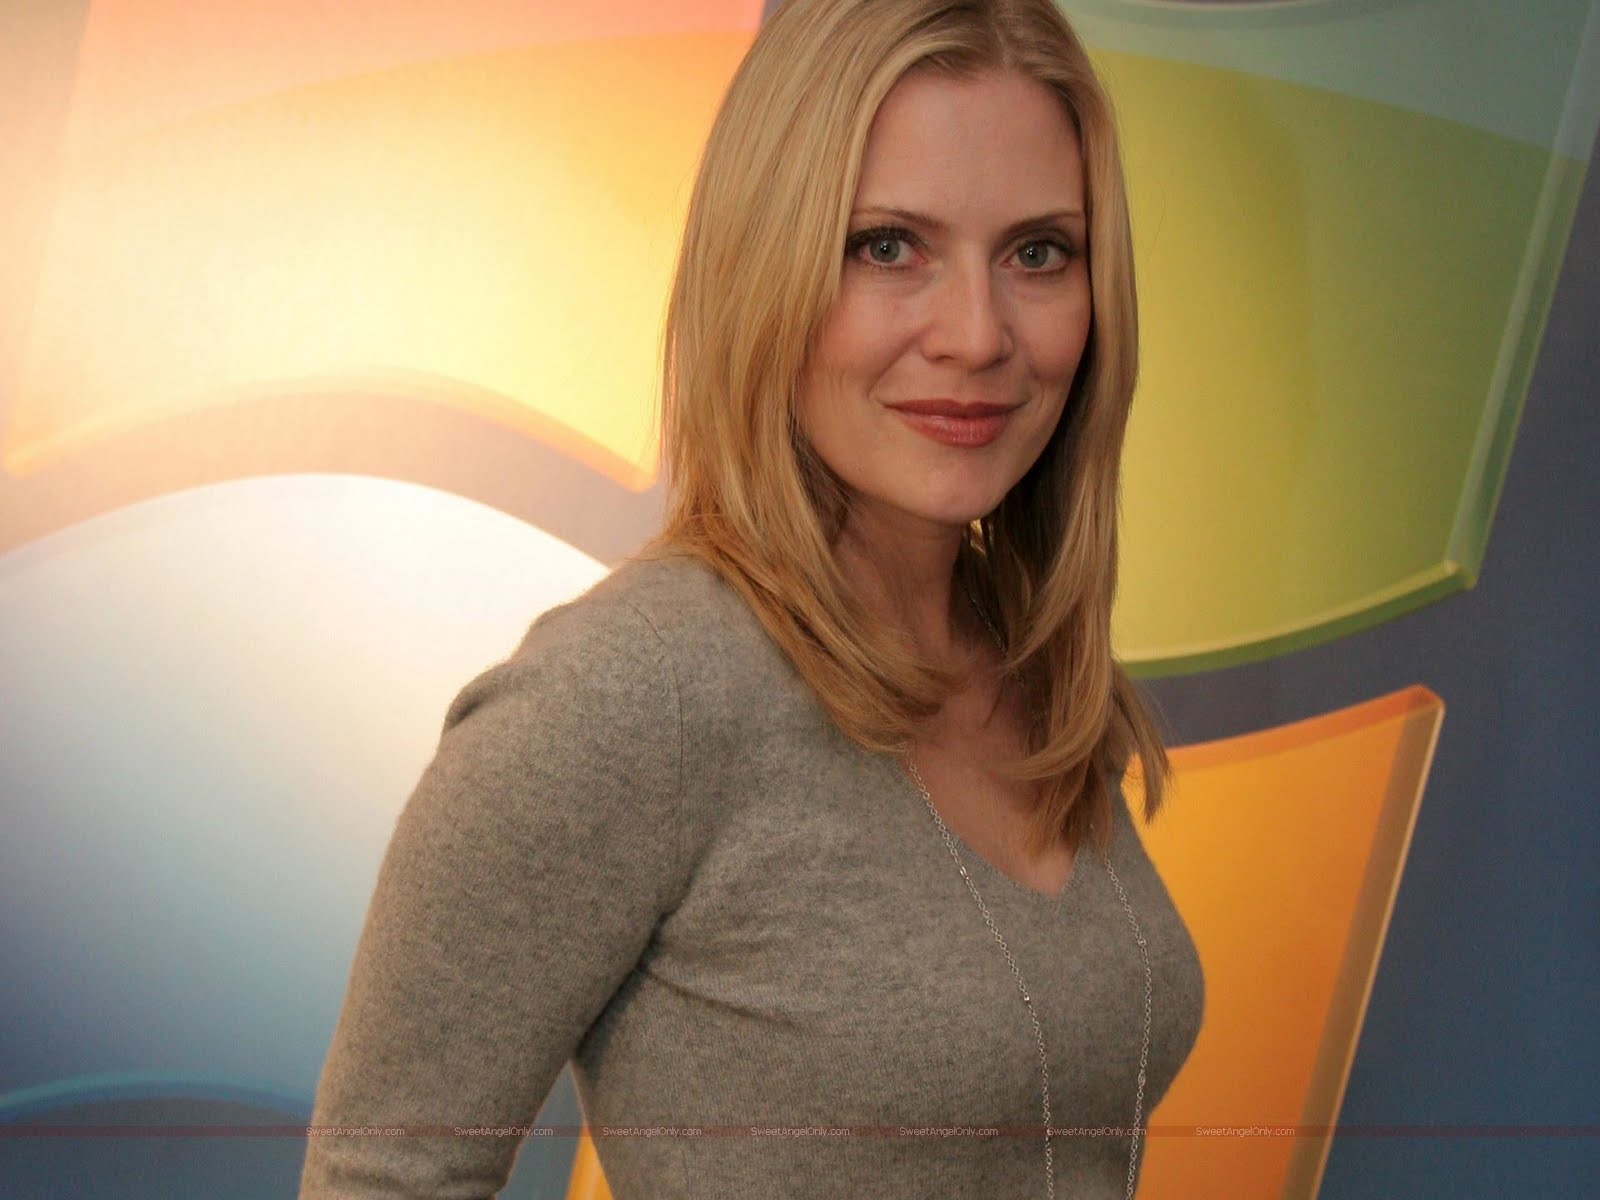 My little pony shipping is magic vk madison has talent for her. is emily procter married sexy pics of emily procter